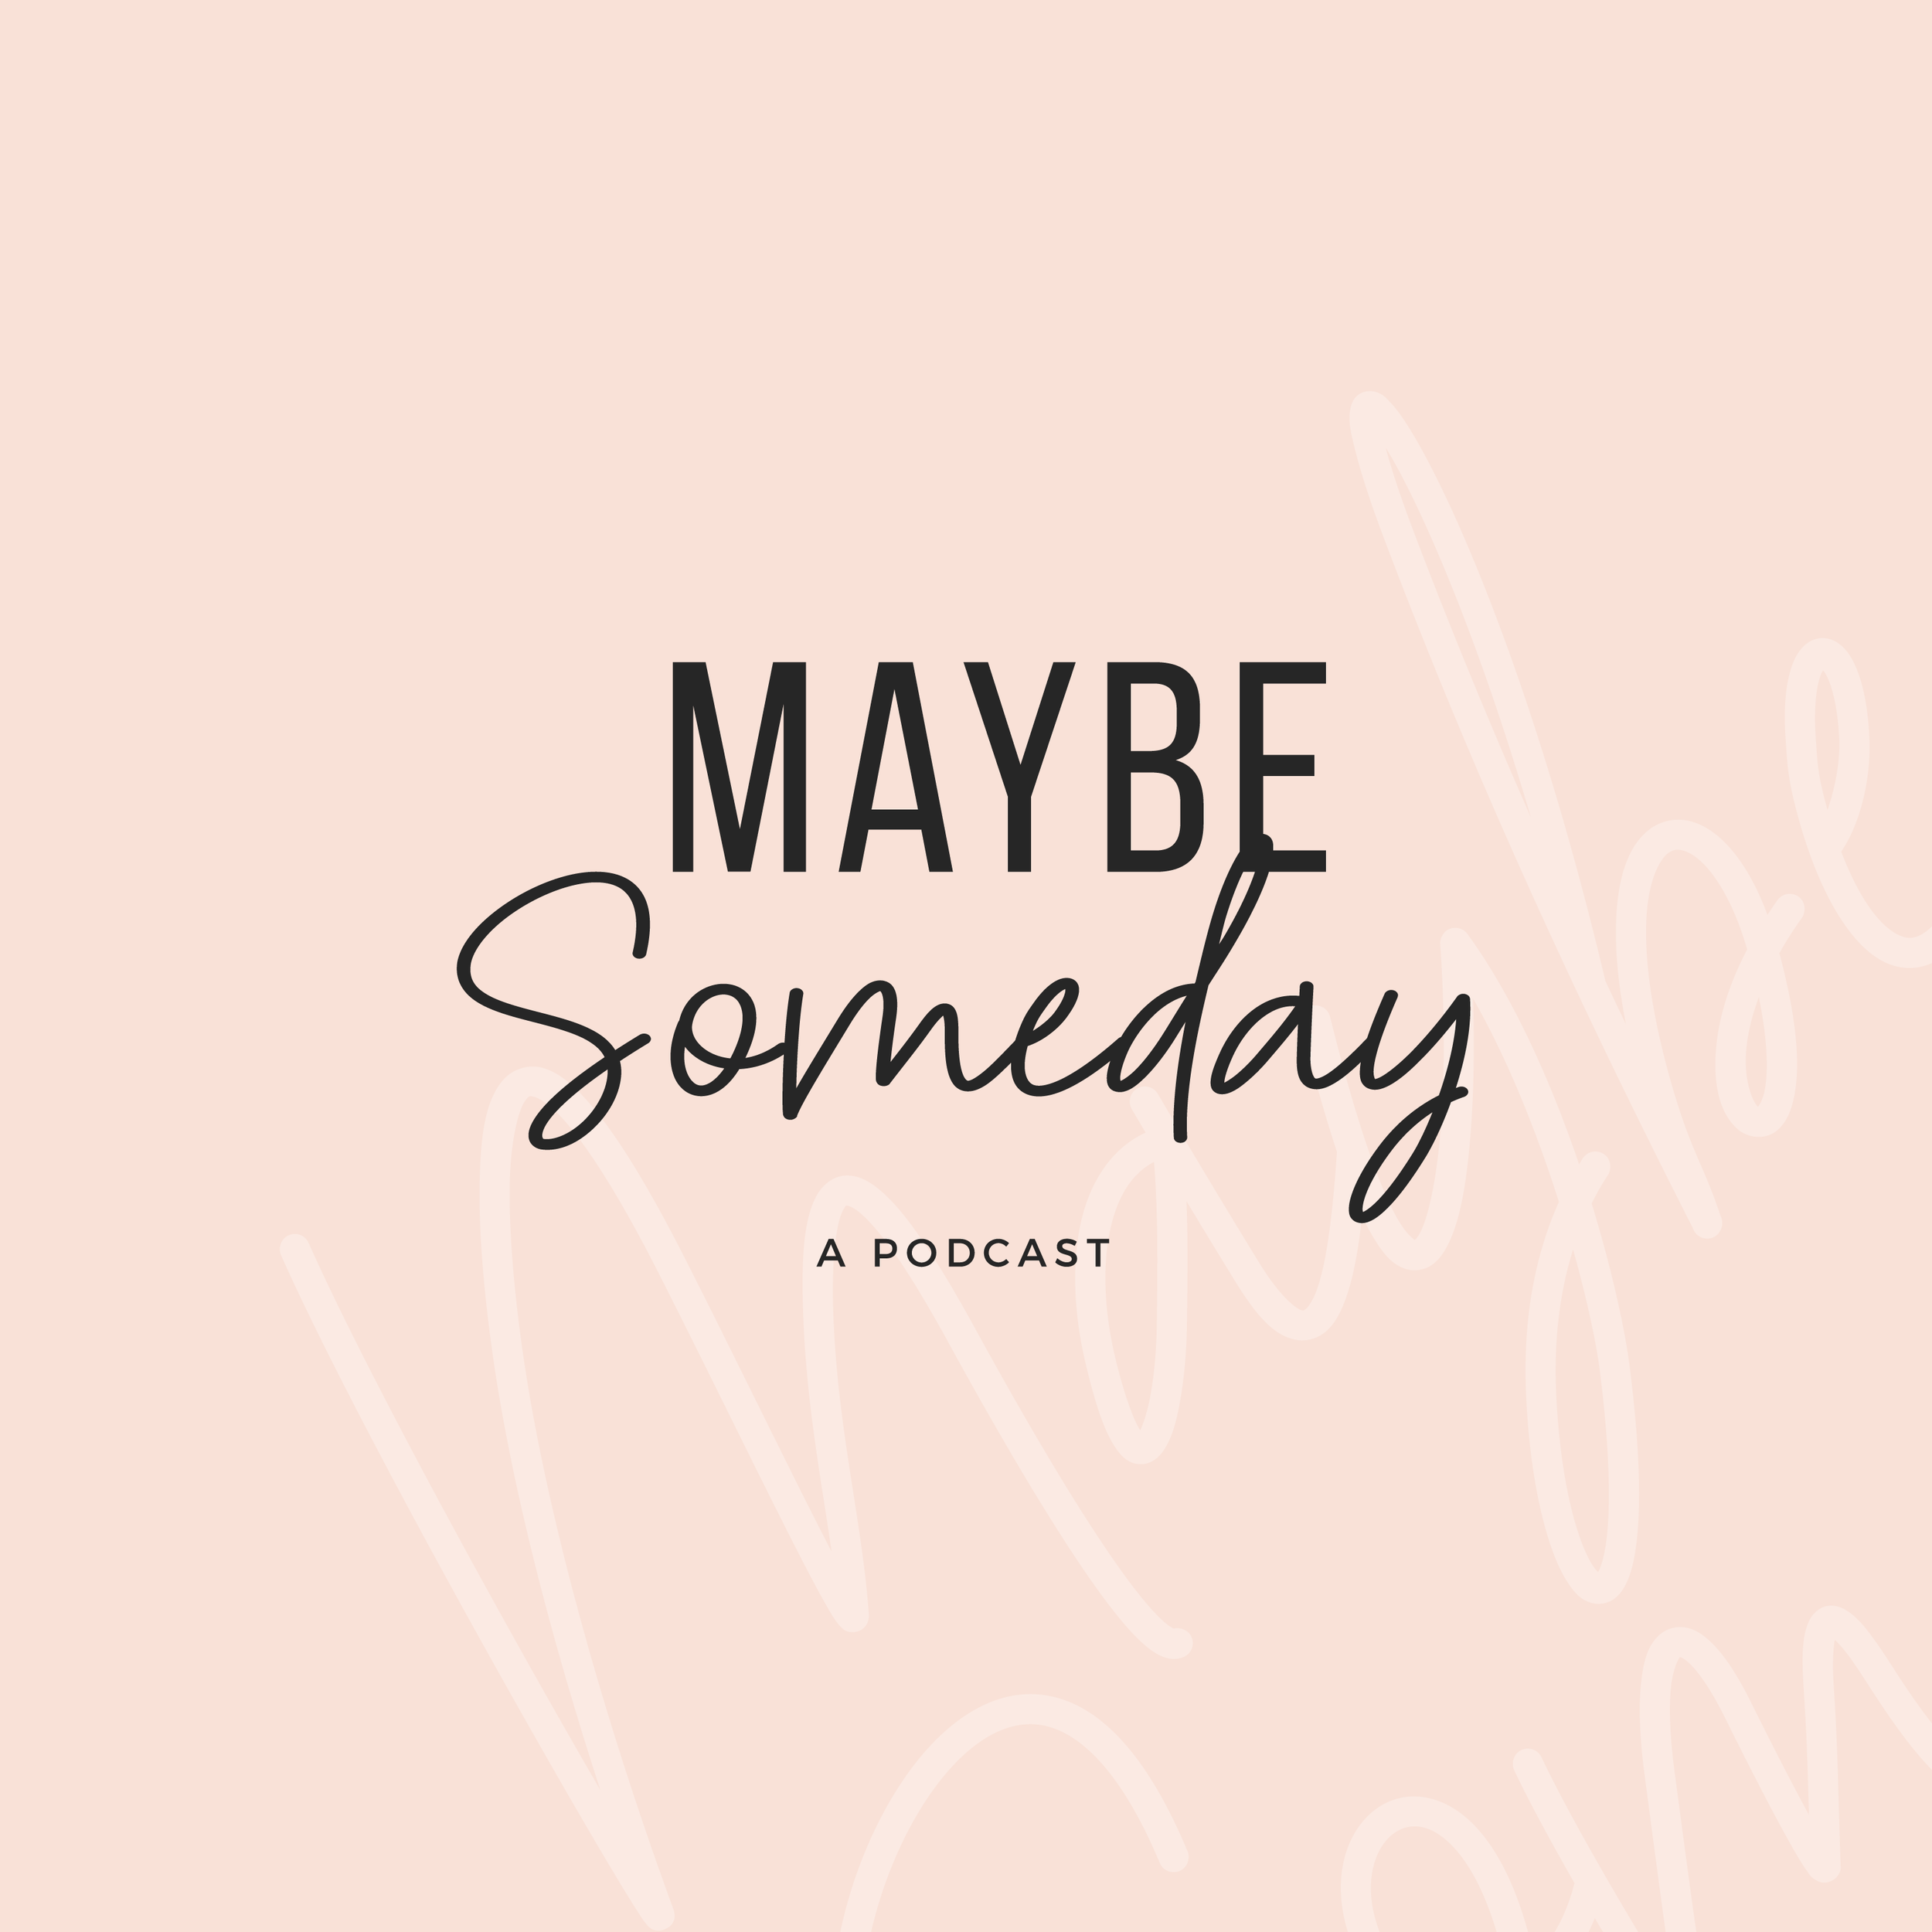 Maybe Someday-Podcast Artwork-09.png